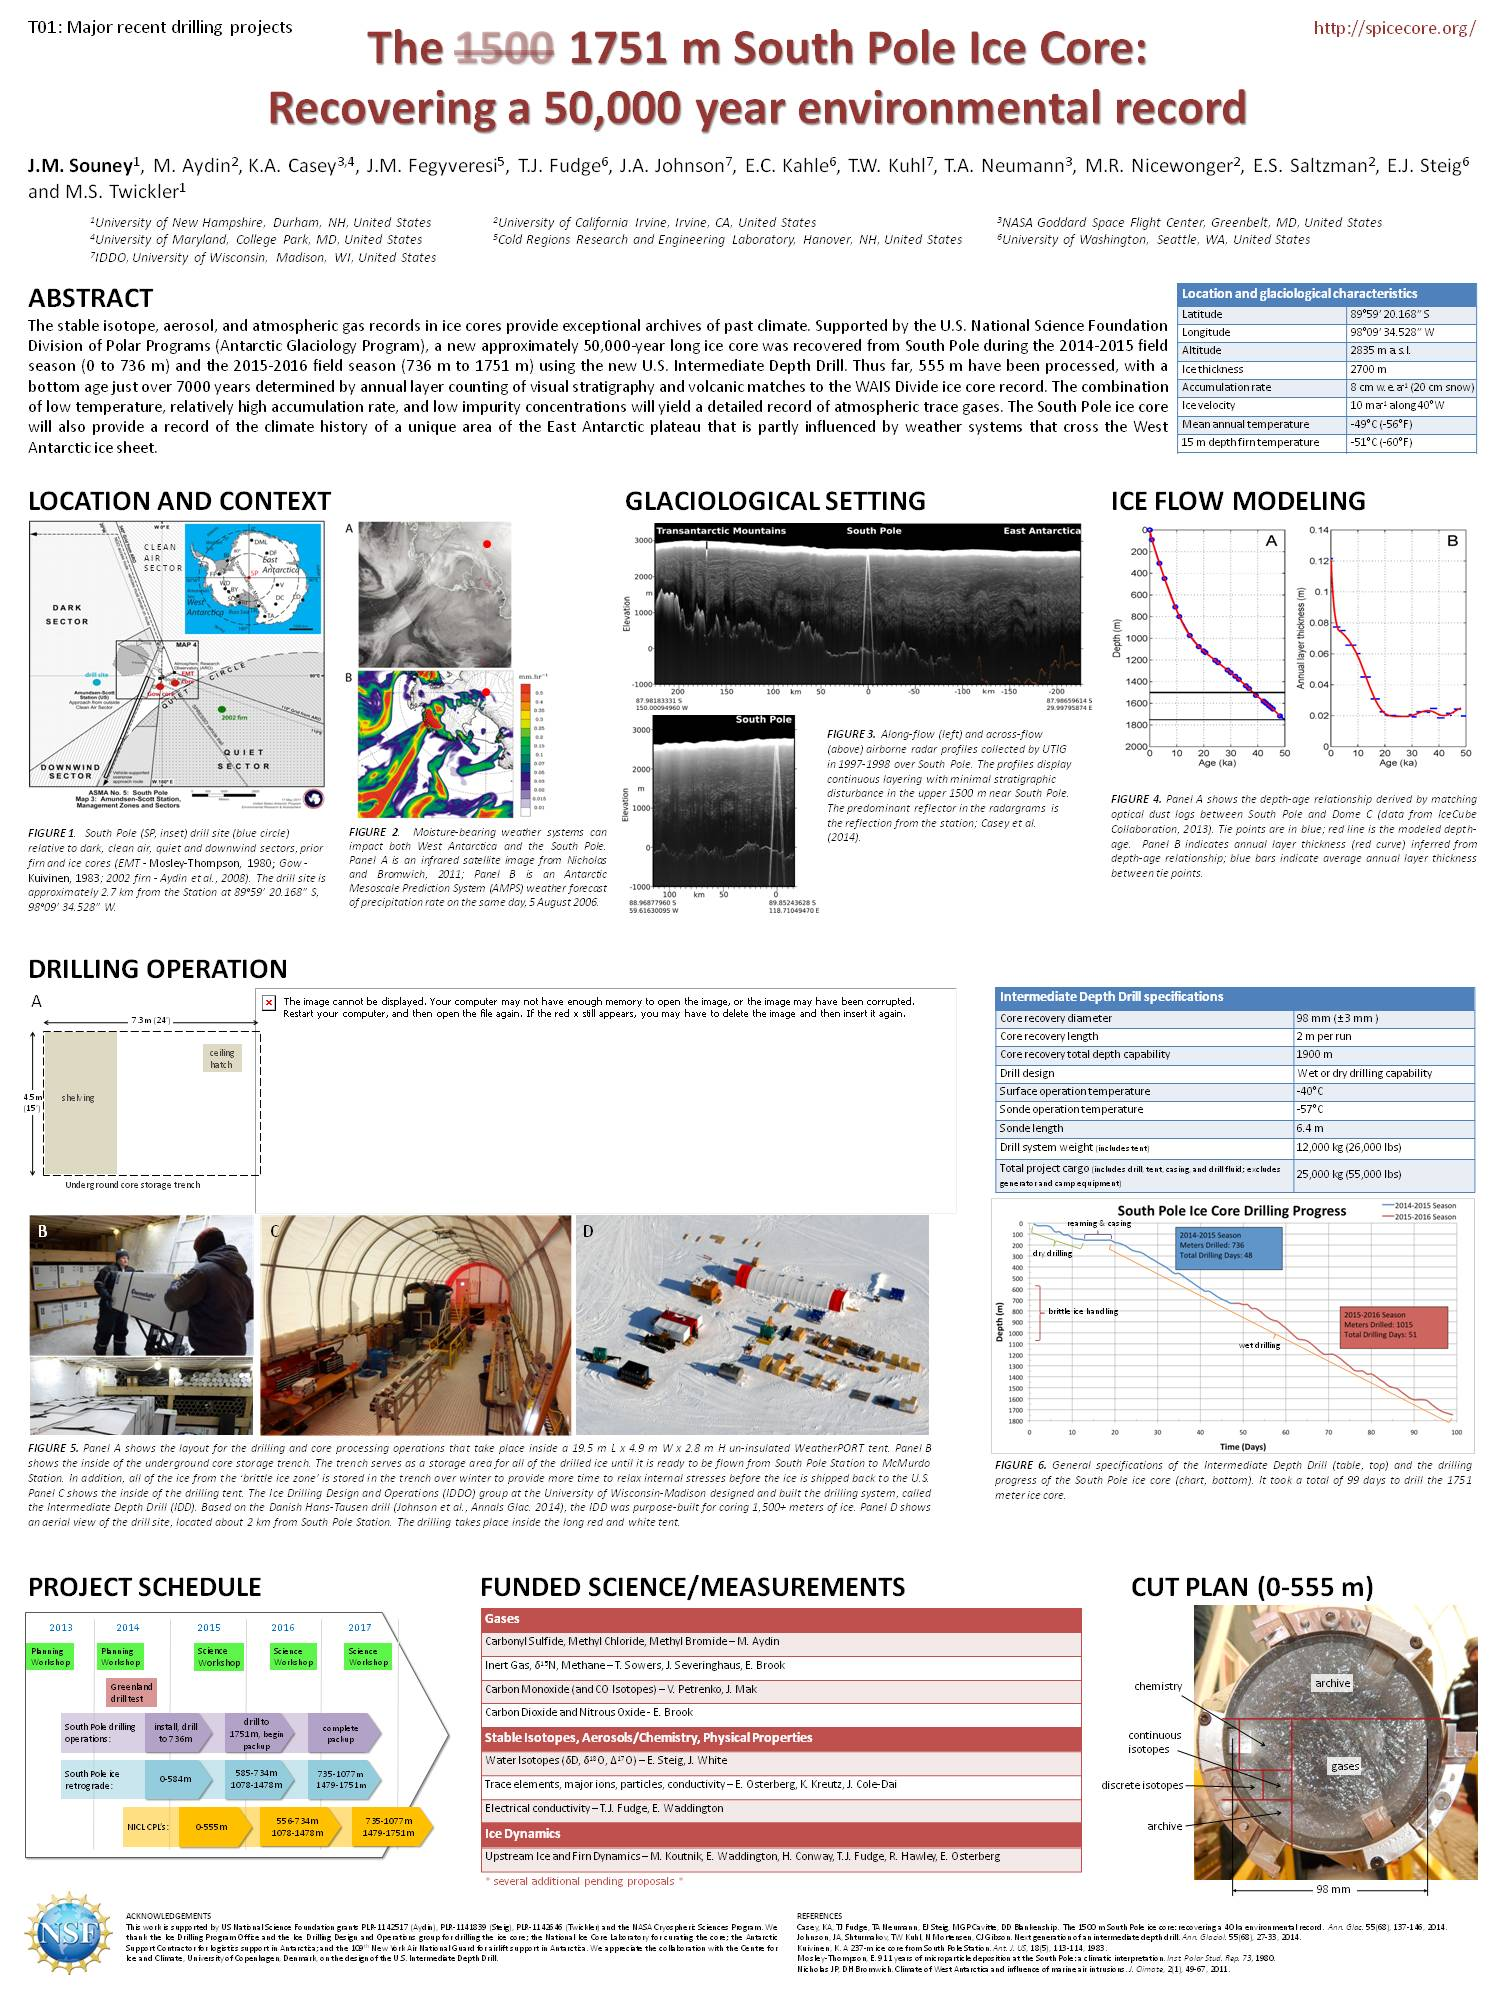 South Pole Ice Core Poster For Ipics 2nd Open Science Conference by jmsouney